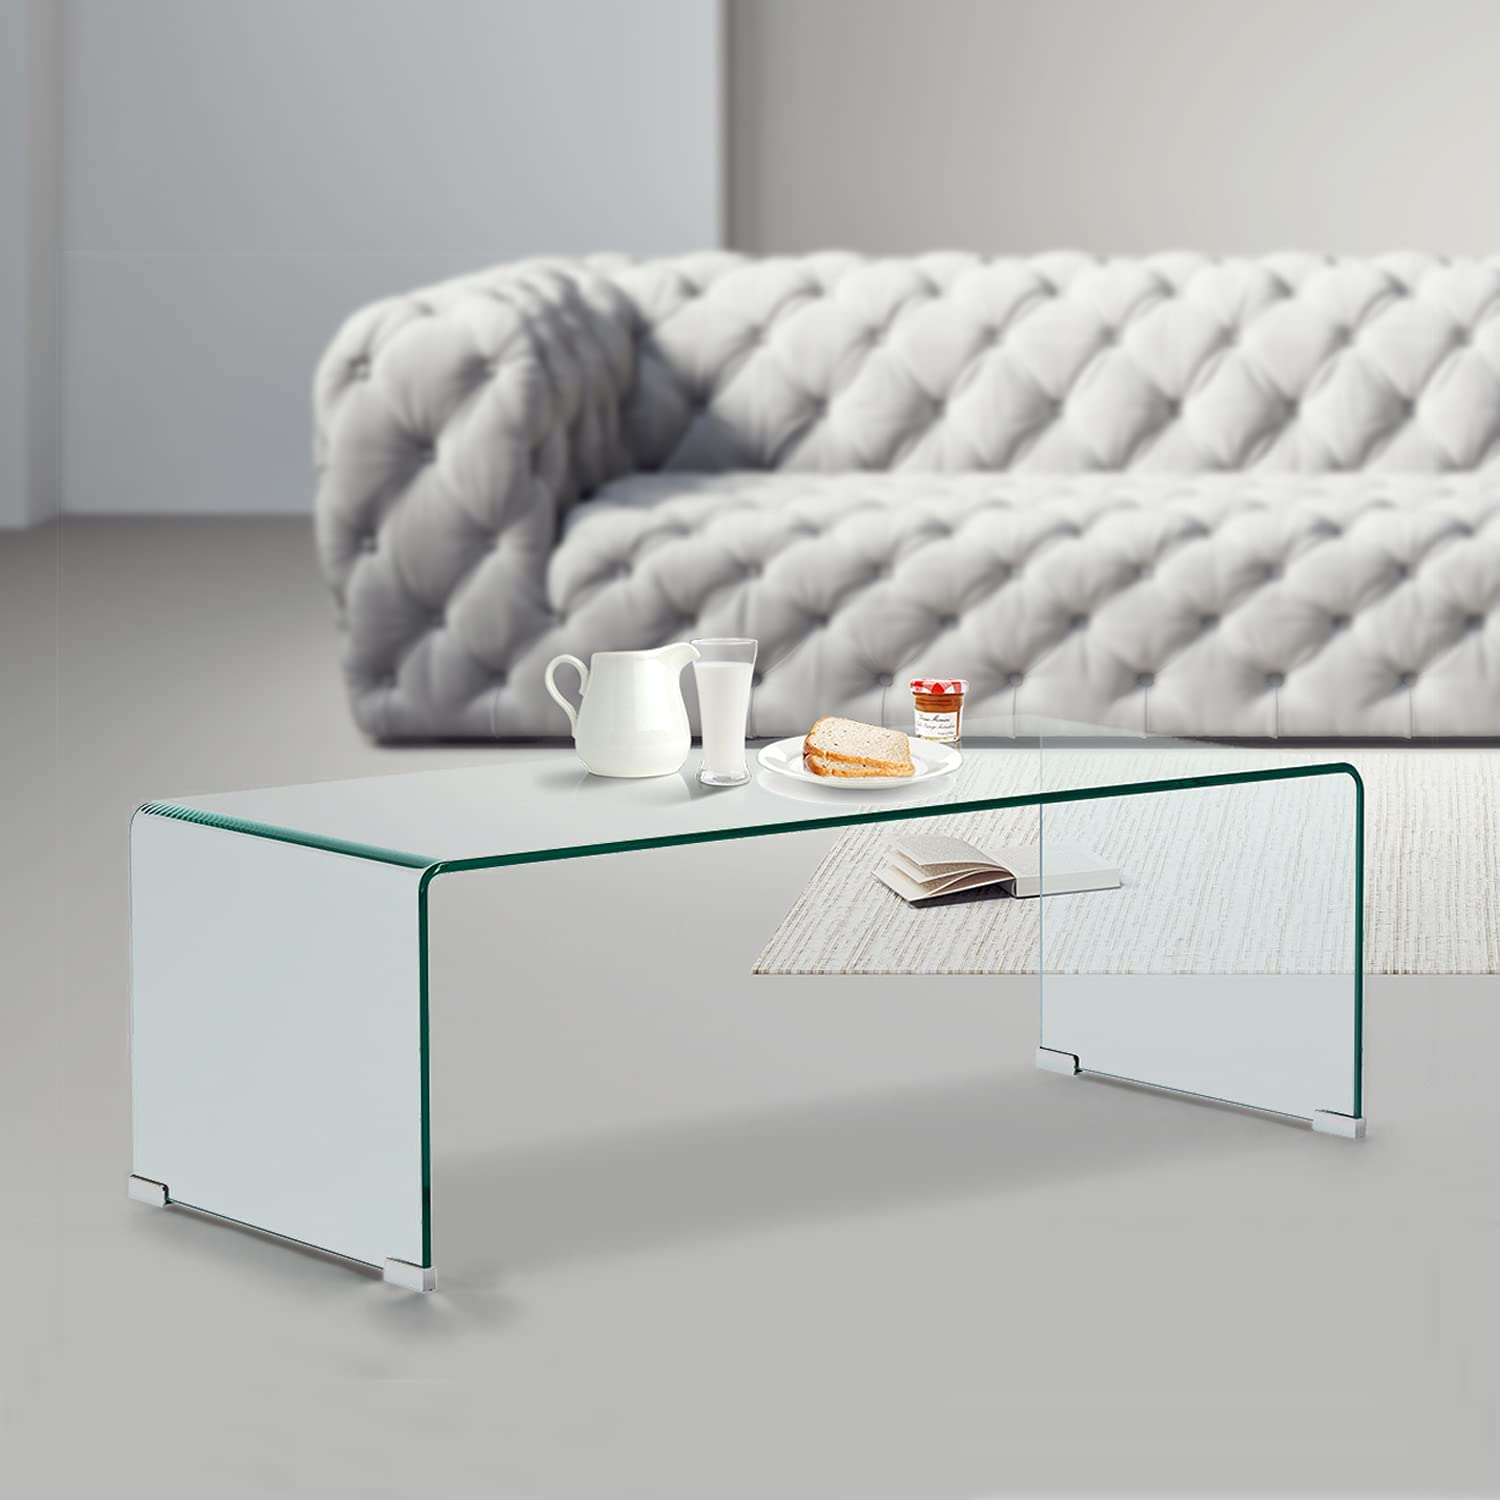 price Thicken 10MM Tempered Glass Coffee Decor Tables Modern Clear Max 70% OFF Co